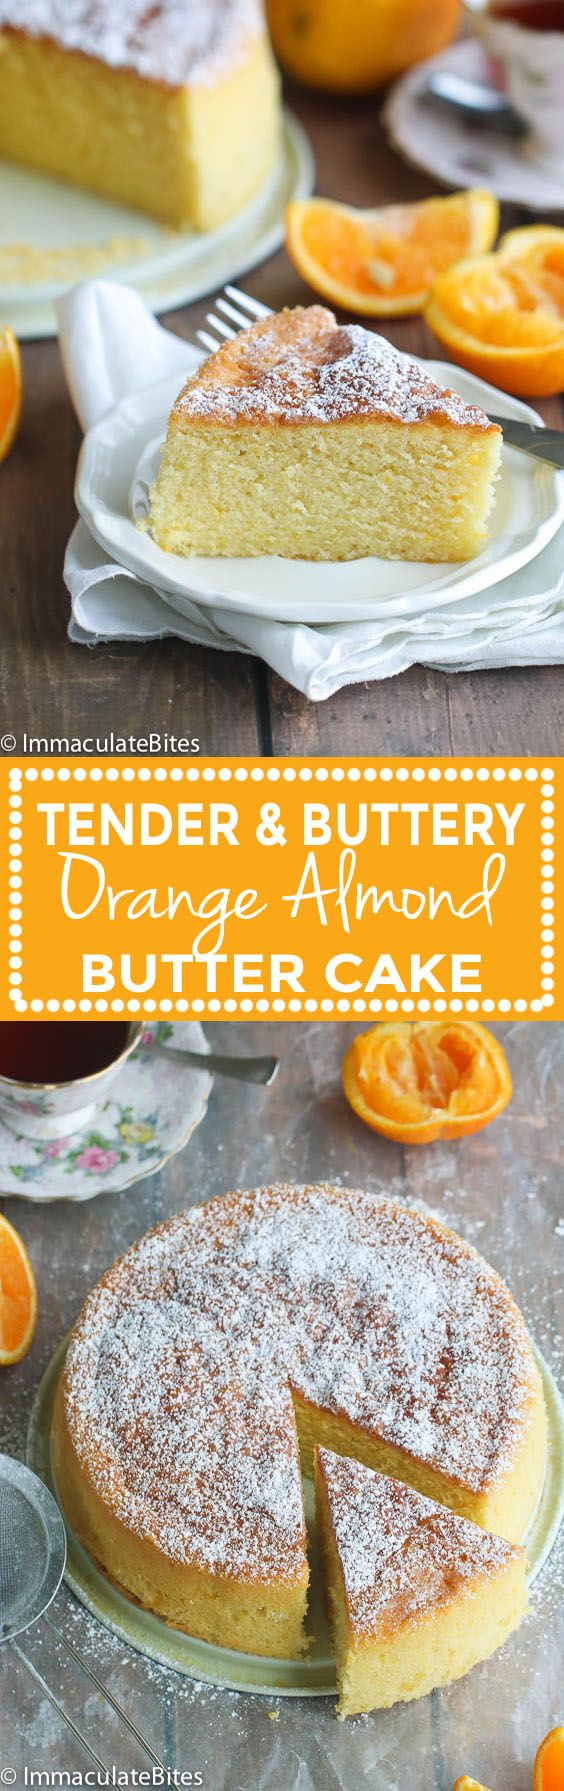 Orange Almond Butter Cake- A tender, buttery melt in your mouth cake , add this to your cake repertoire - the taste is irresistible.